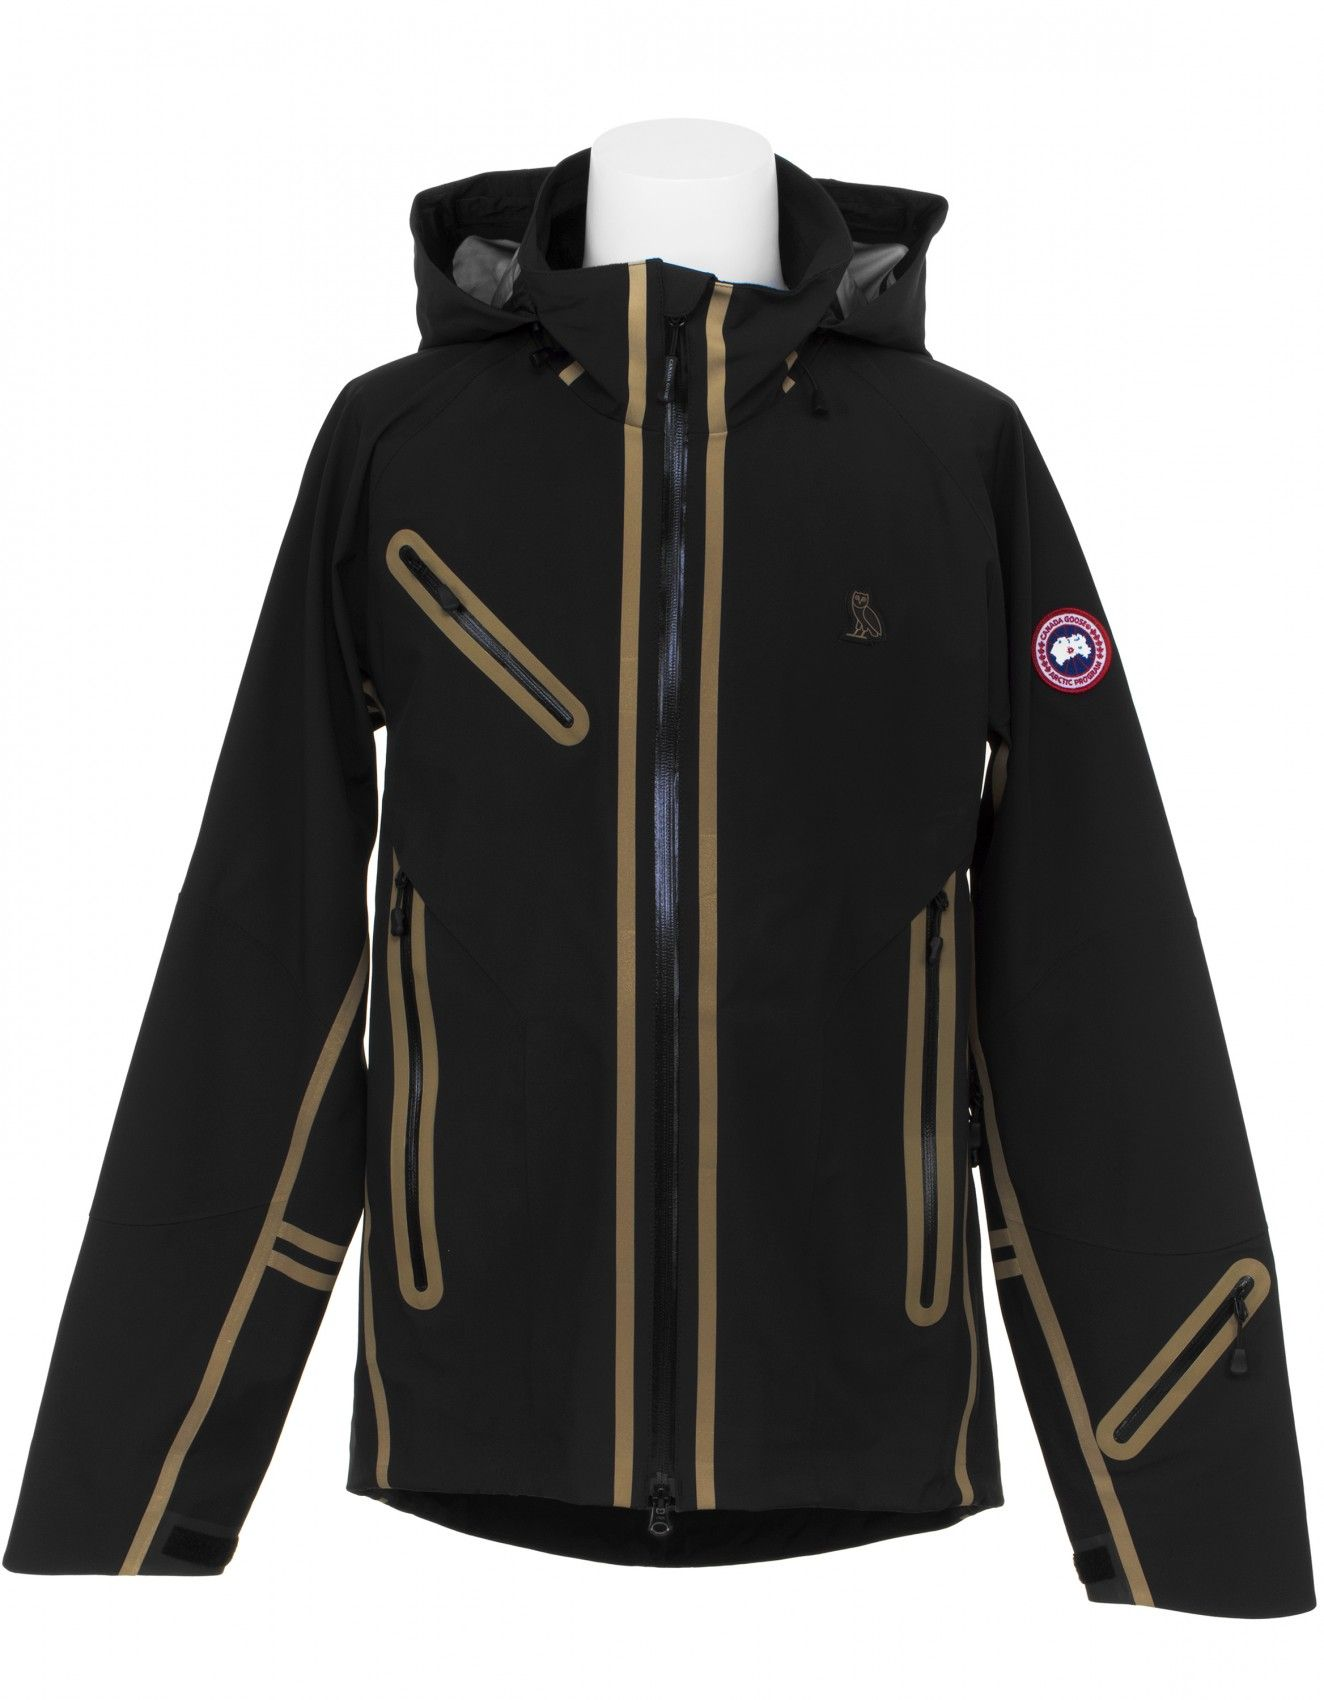 timber jacket canada goose x ovo timber jacket architecture